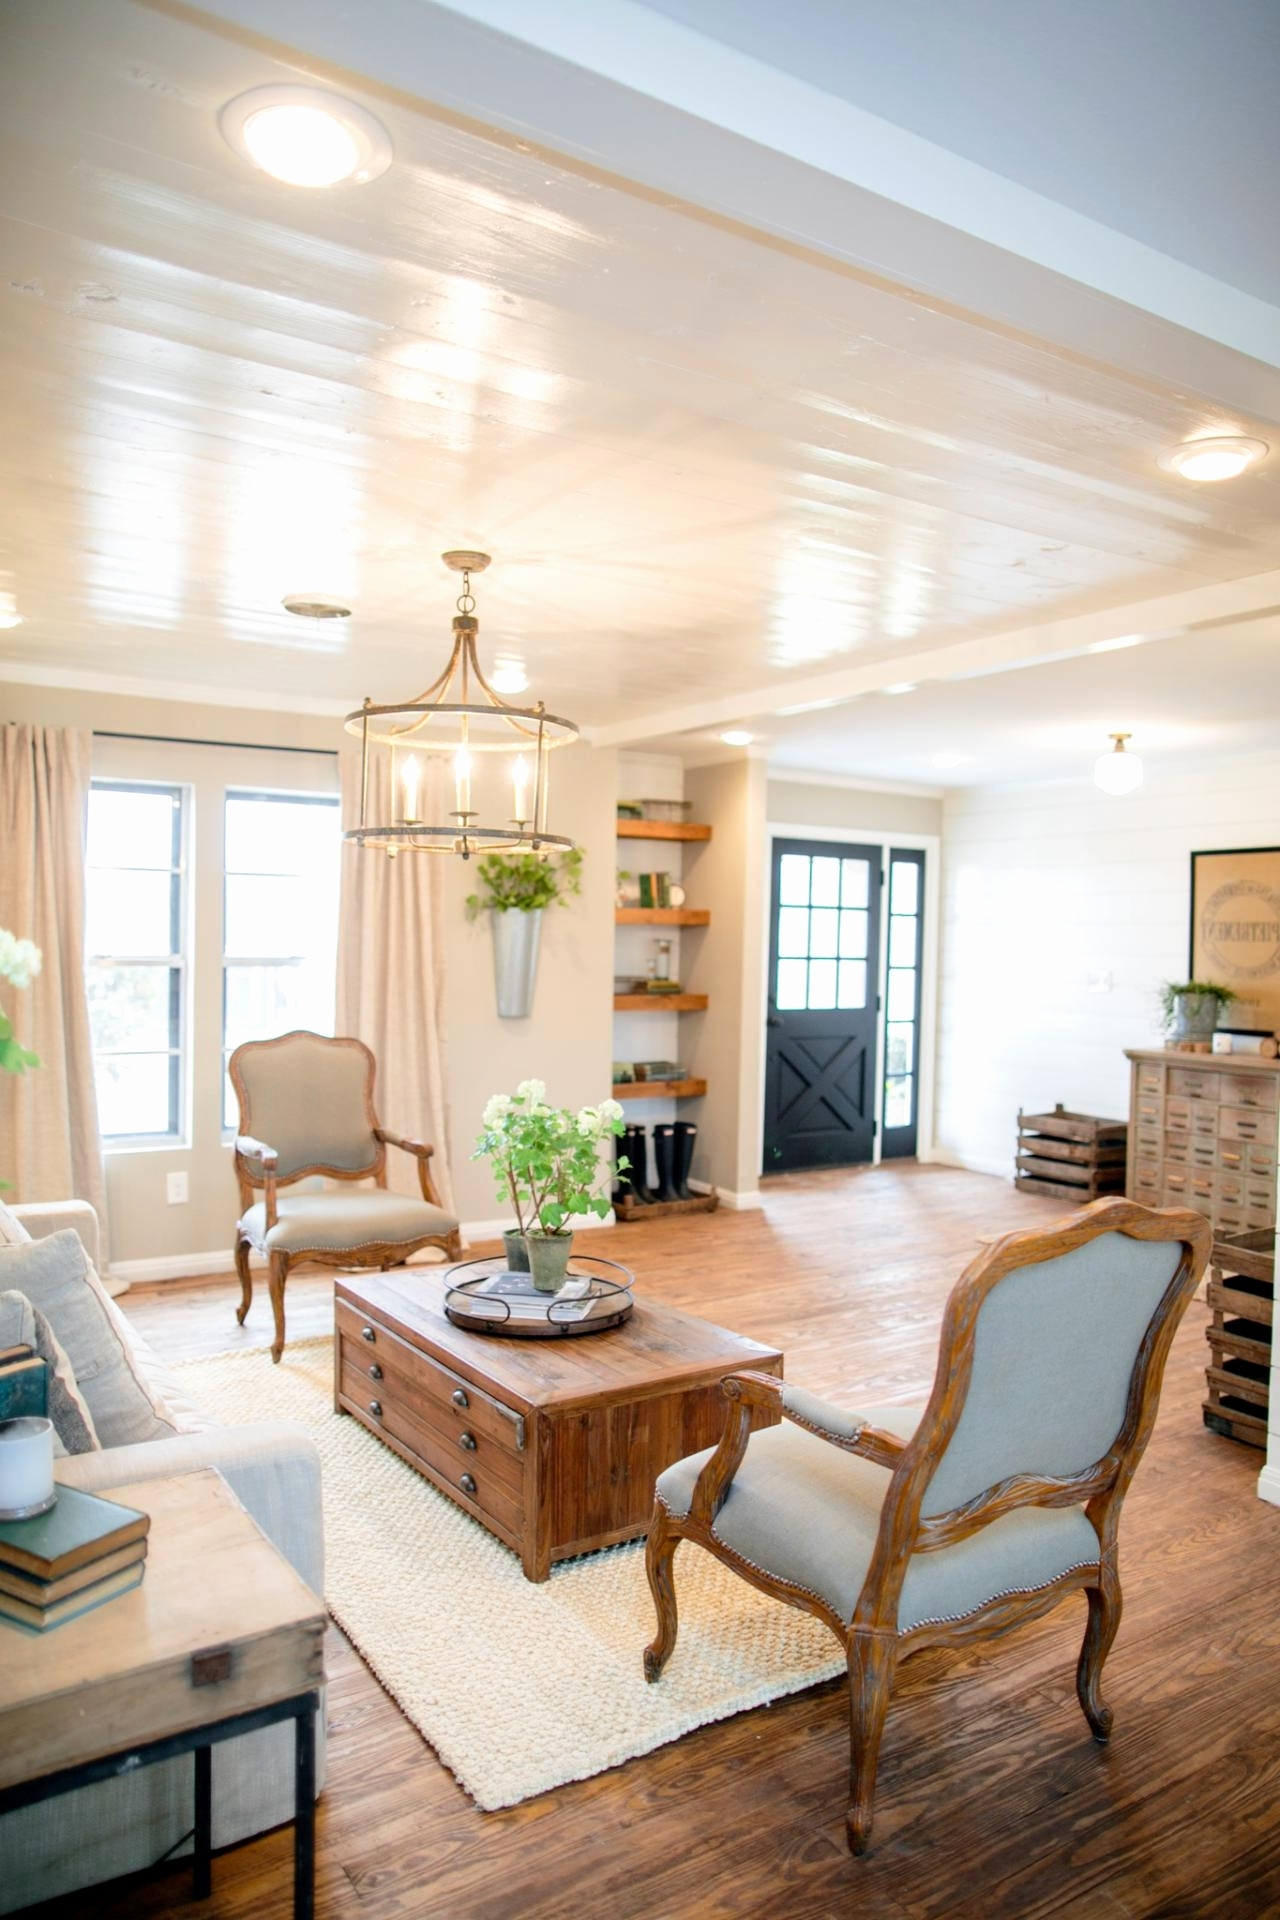 Latest Joanna Gaines Outdoor Ceiling Fans With Ceiling Fan Direction For Vaulted Ceilings Awesome 9 Design Tricks (View 12 of 20)